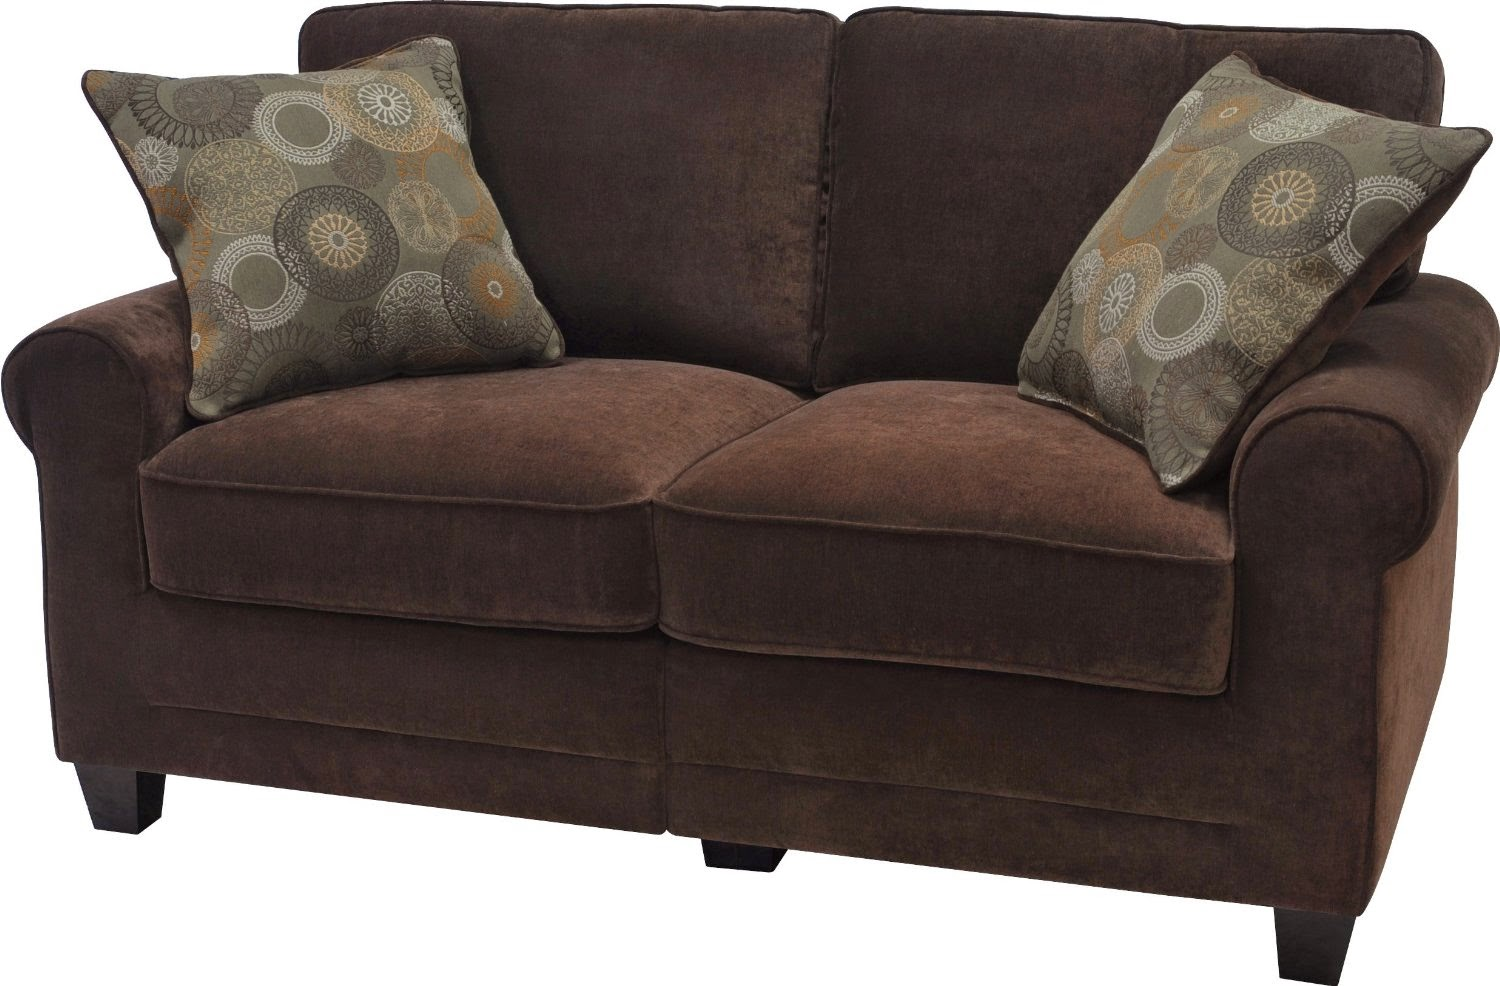 Serta sofa and loveseat serta sofas loveseats living room furniture the home depot thesofa Chocolate loveseat